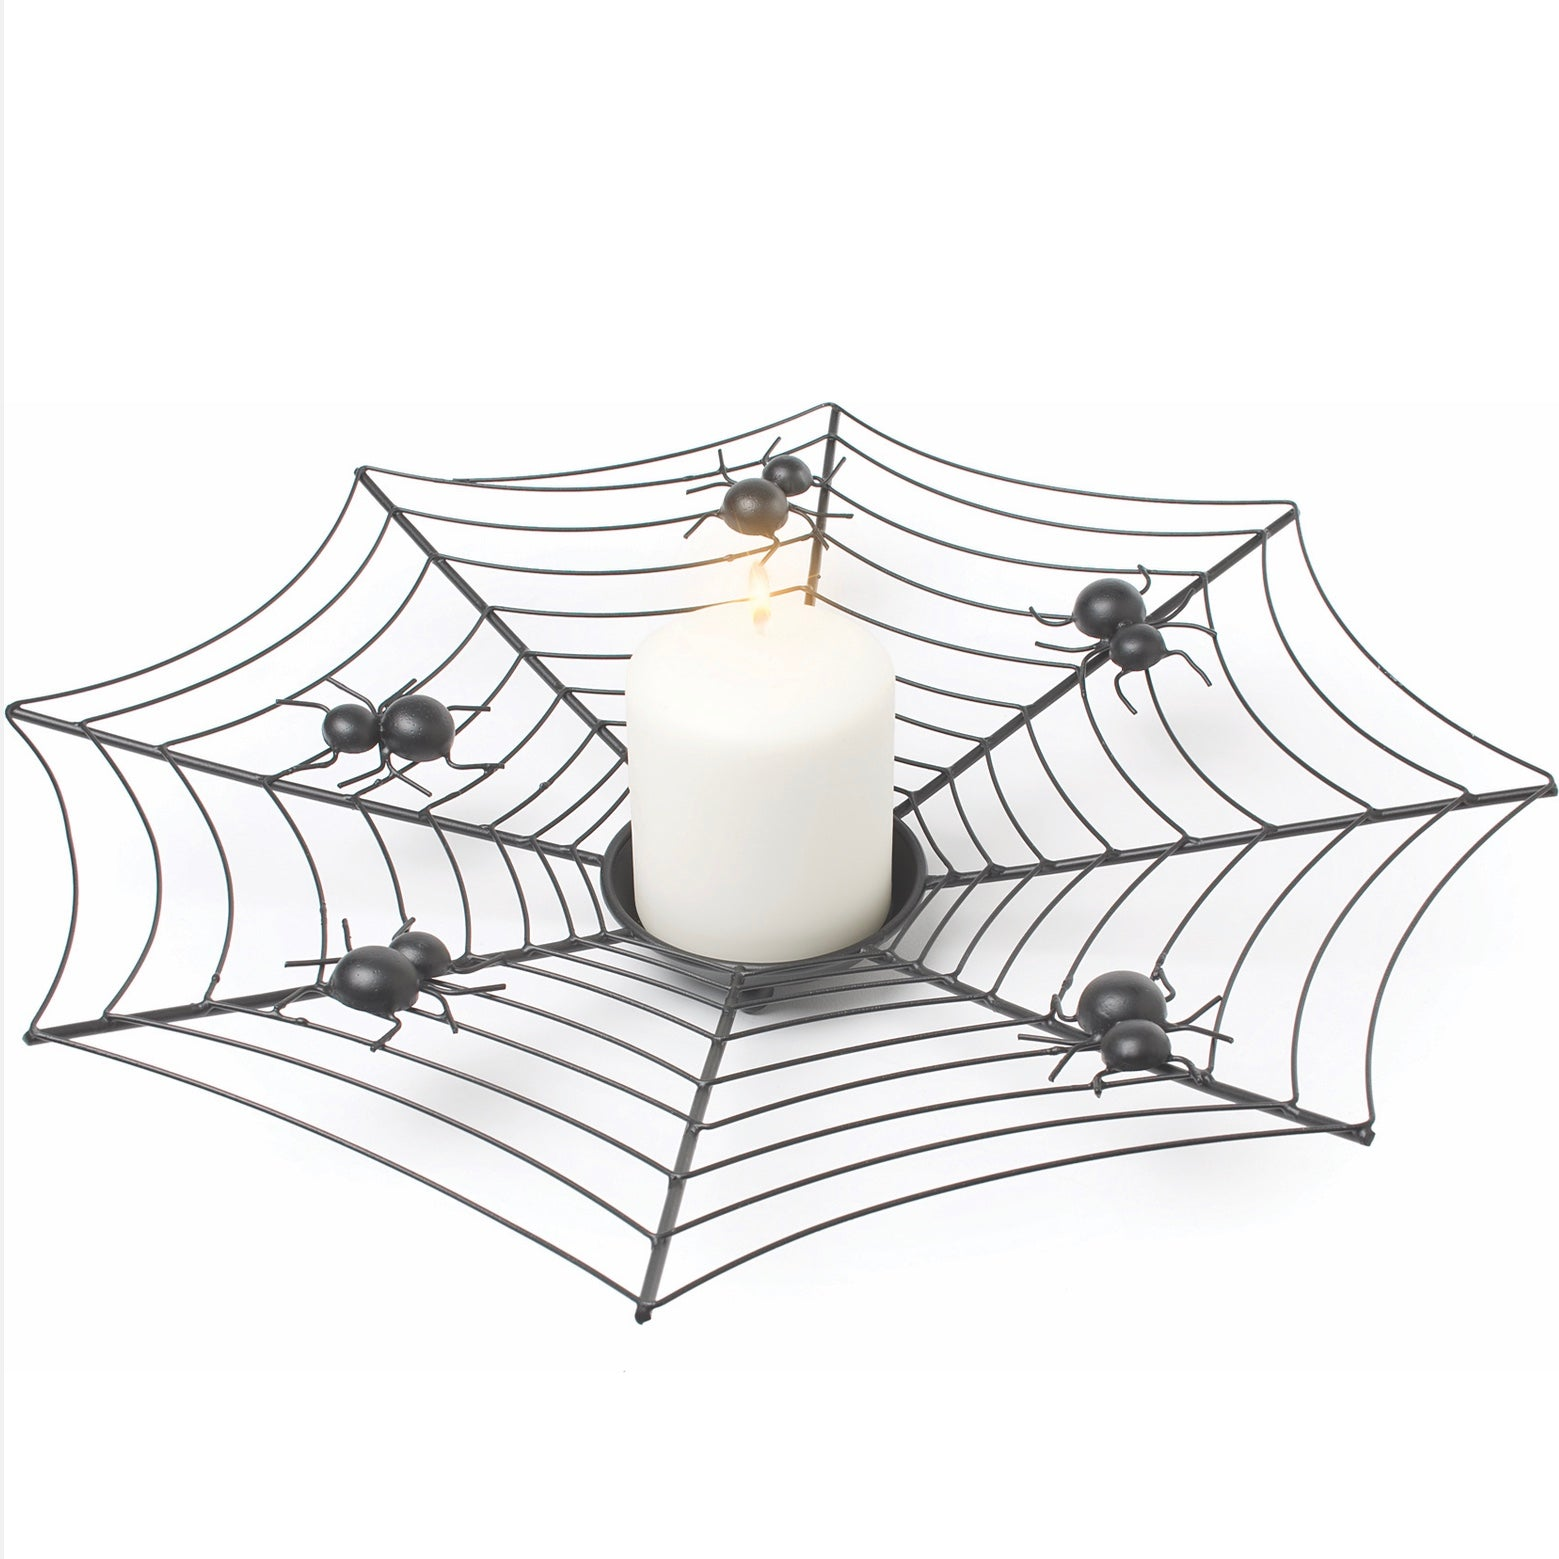 Spider Web Bowl, AC-Abbott Collection, Putti Fine Furnishings